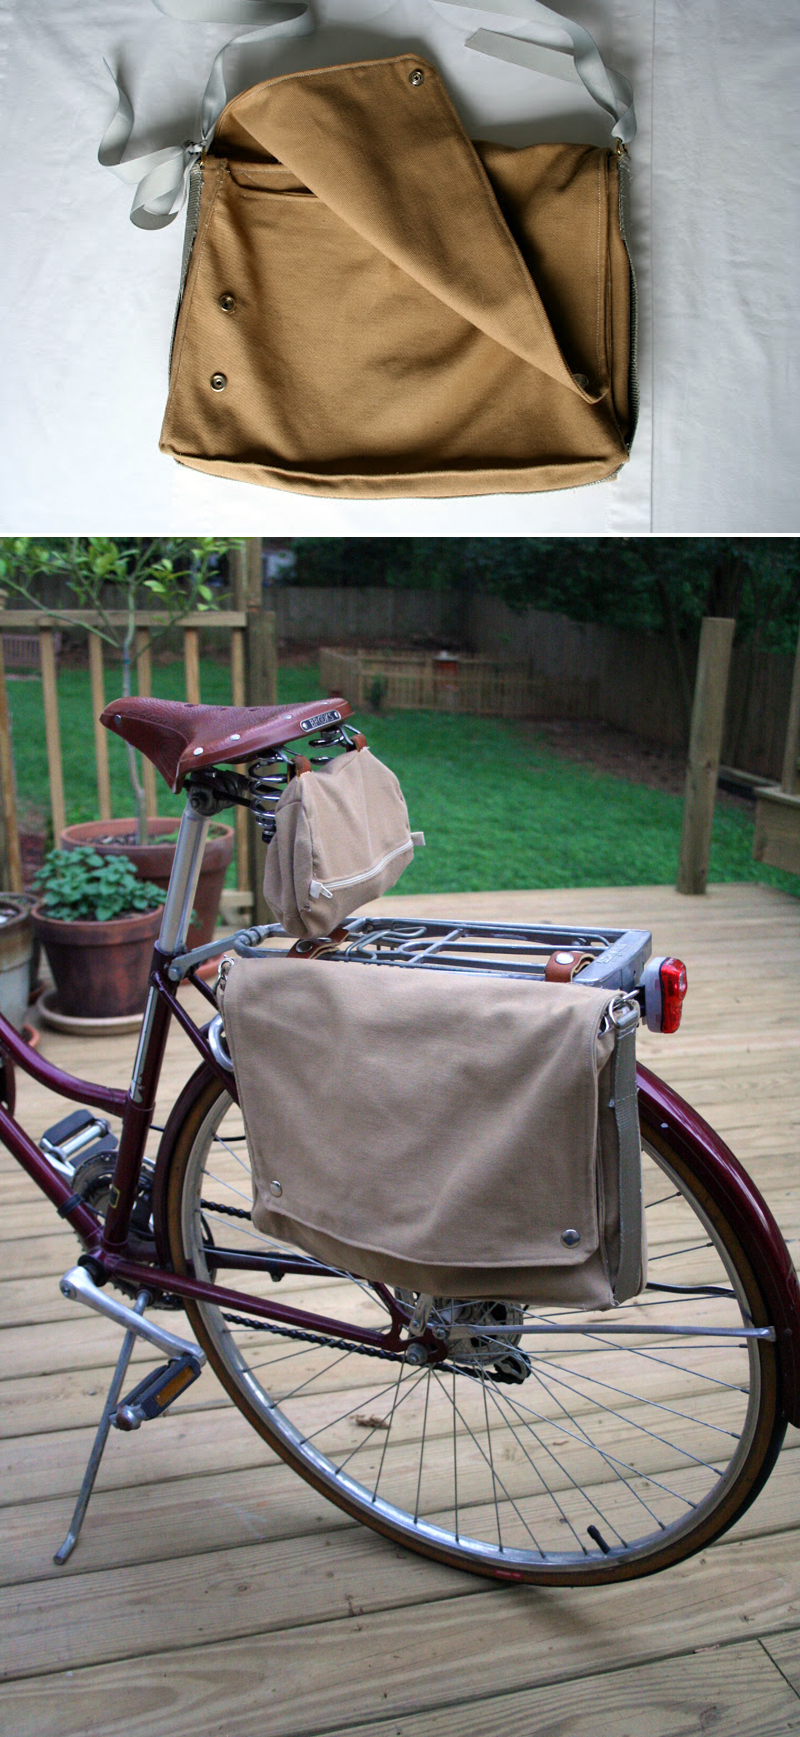 Elizabeth Stevens Morris Eighteenth Century Agrarian Business pannier bike saddlebag Glass and Sable Home Closet Tool